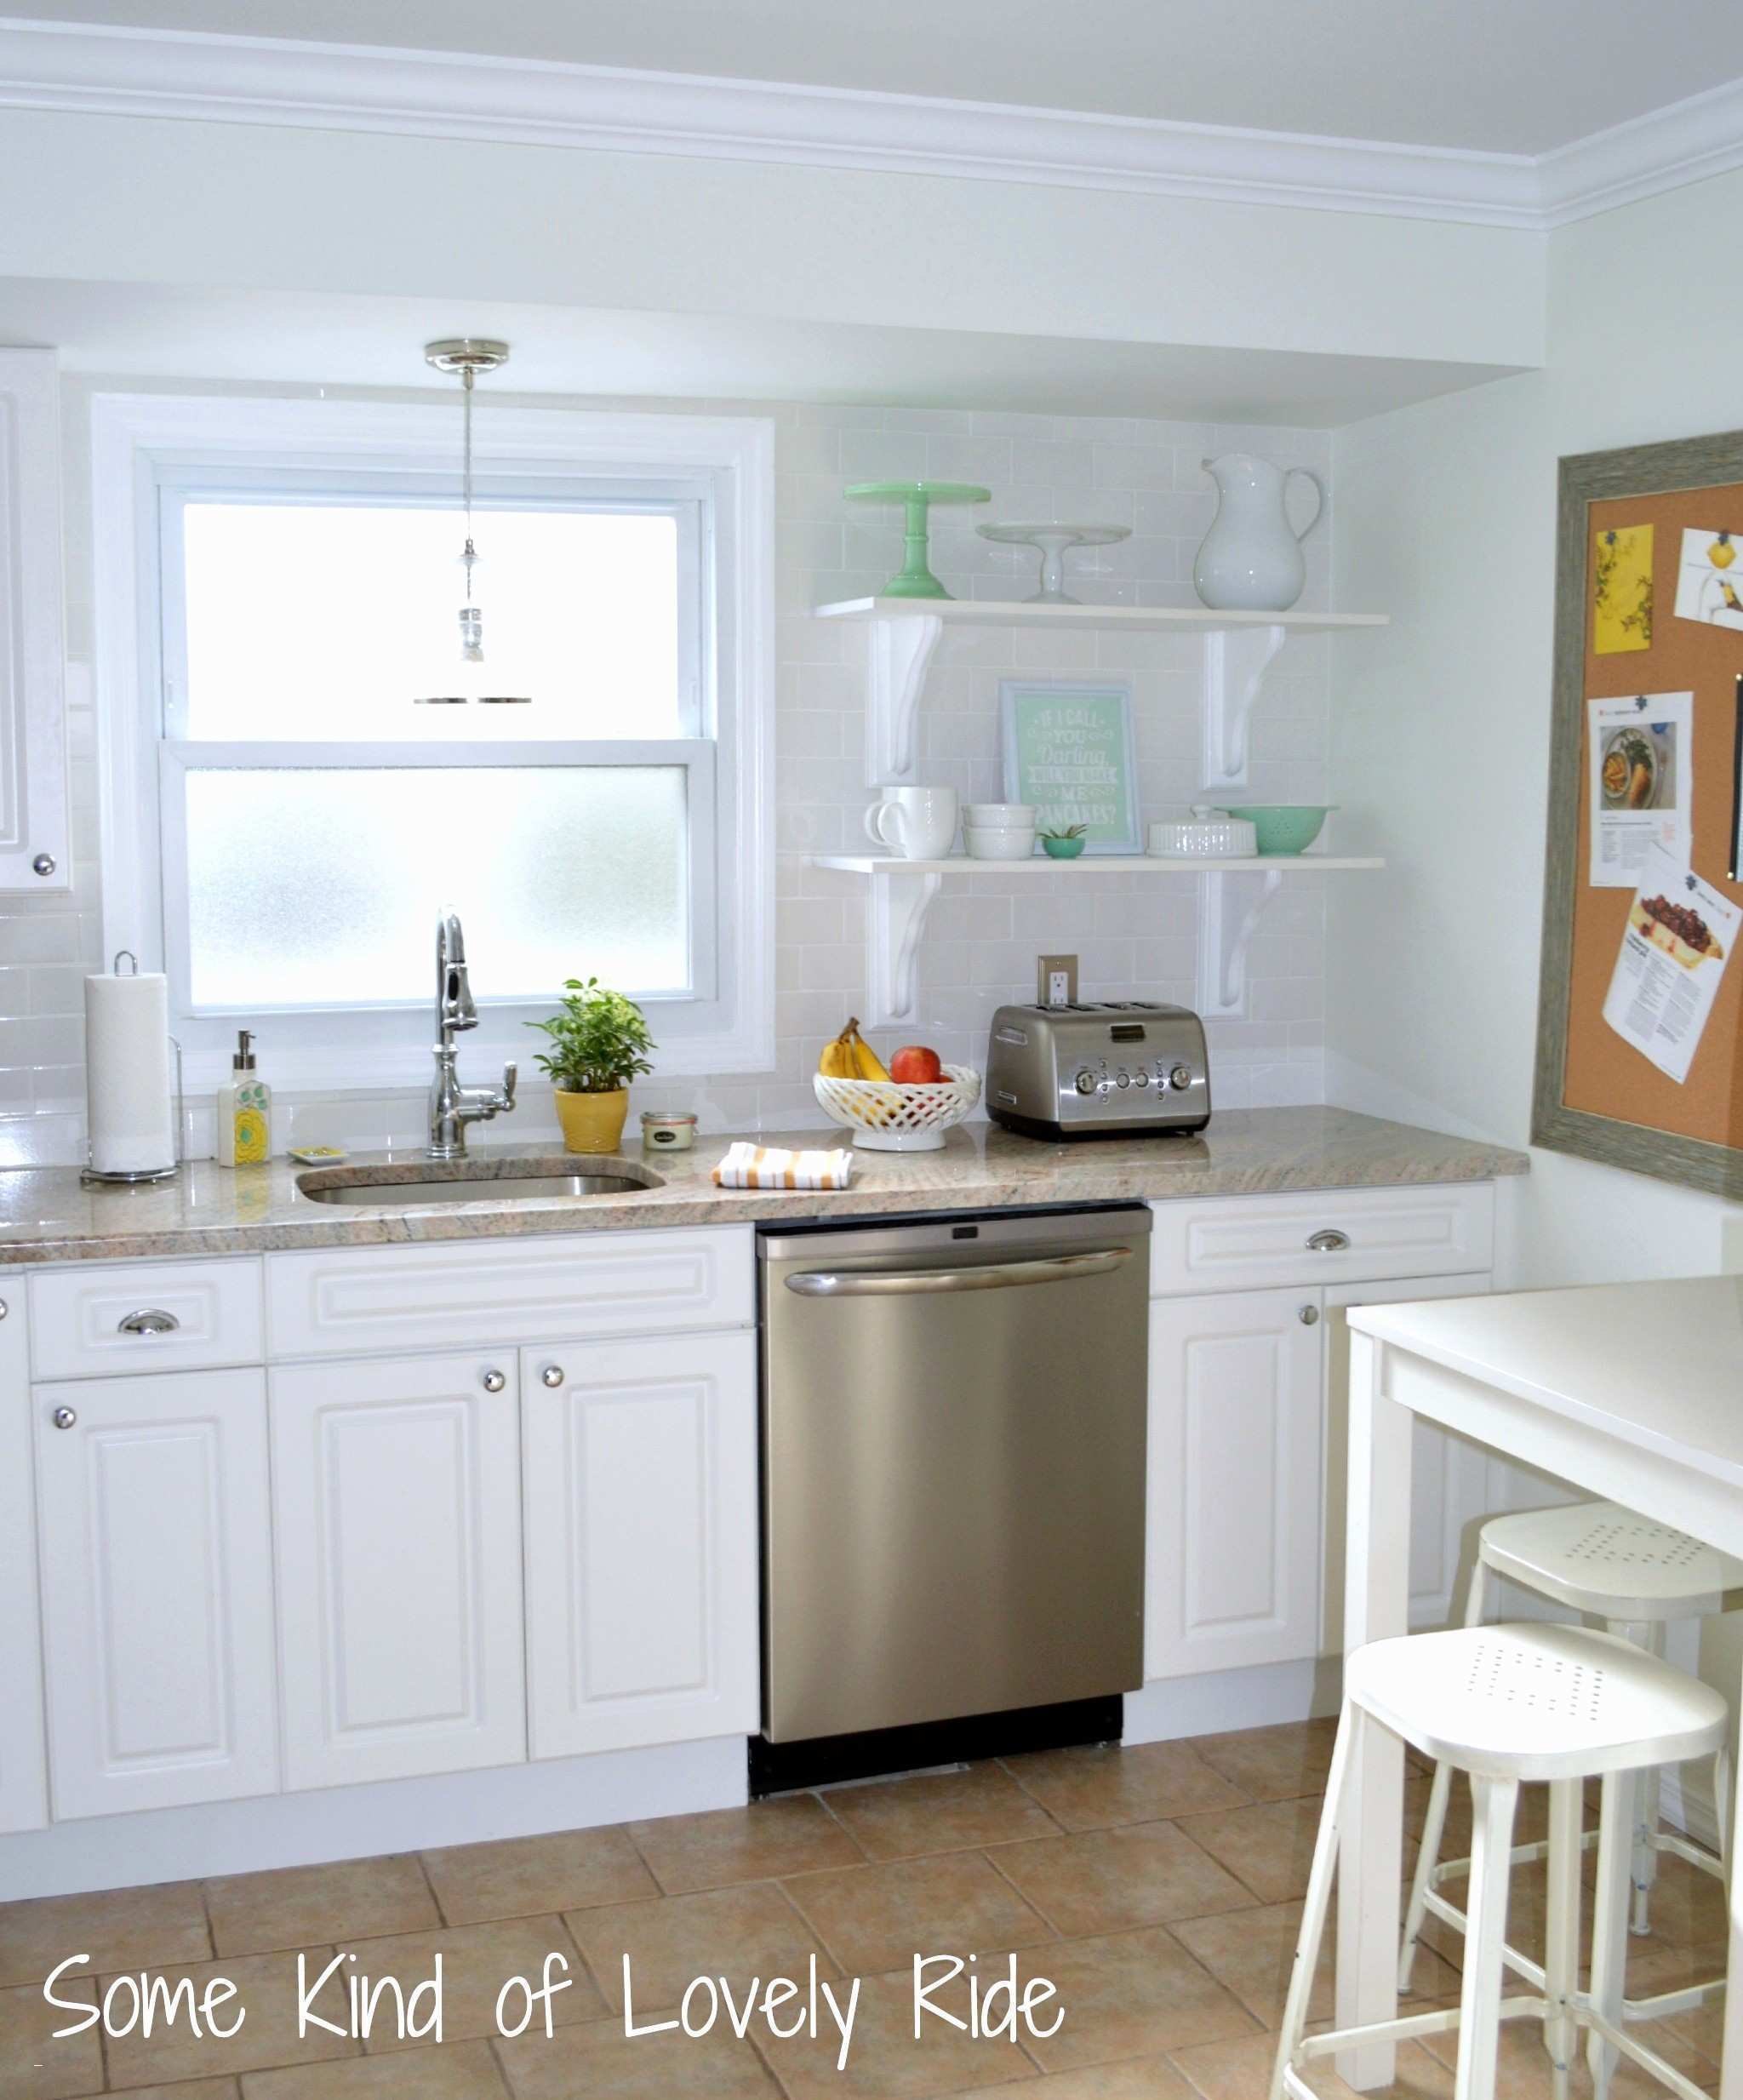 Home Ideas For A Very Small Kitchen New Kitchen Decor Items Luxury